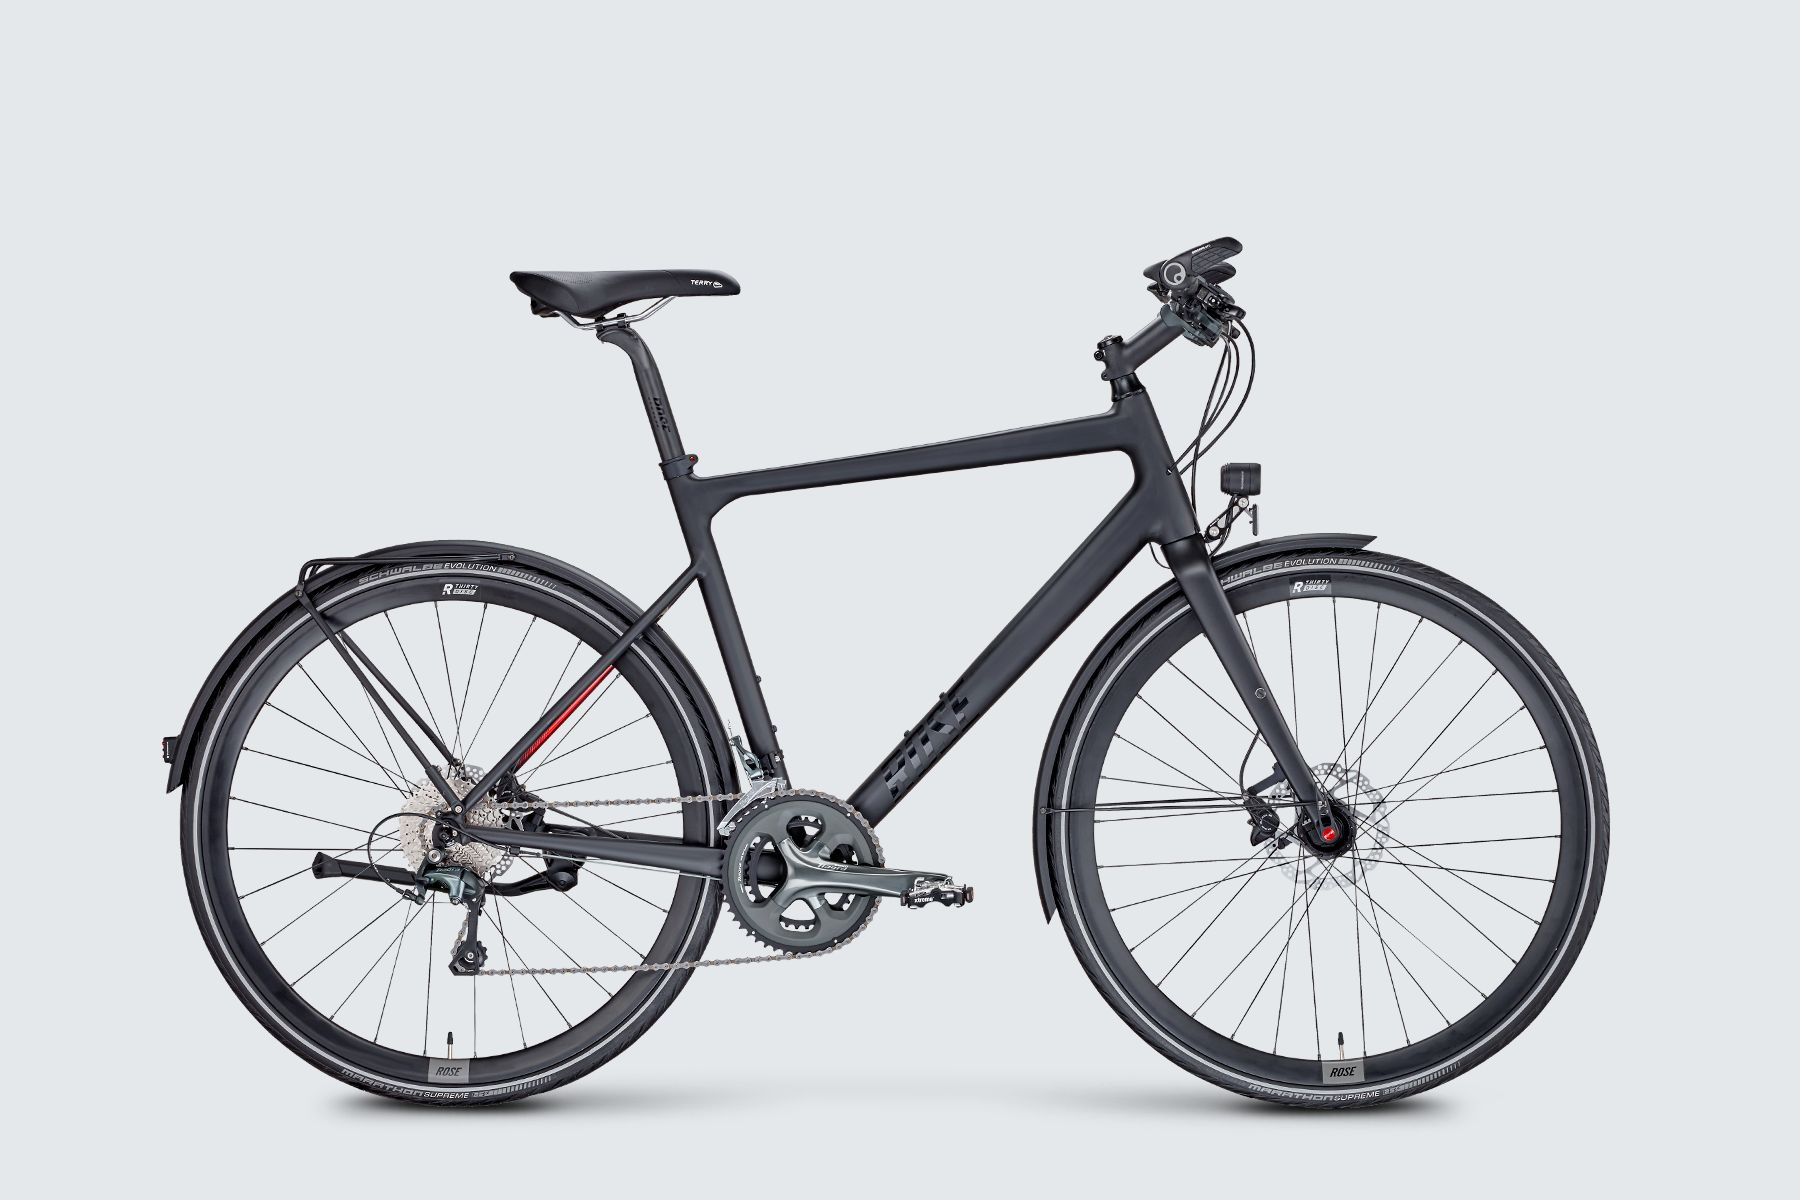 The ROSE MULTISTREET TIAGRA TREKKING MEN | Your dream bike – exclusively available at ROSE Bikes | City-cykler